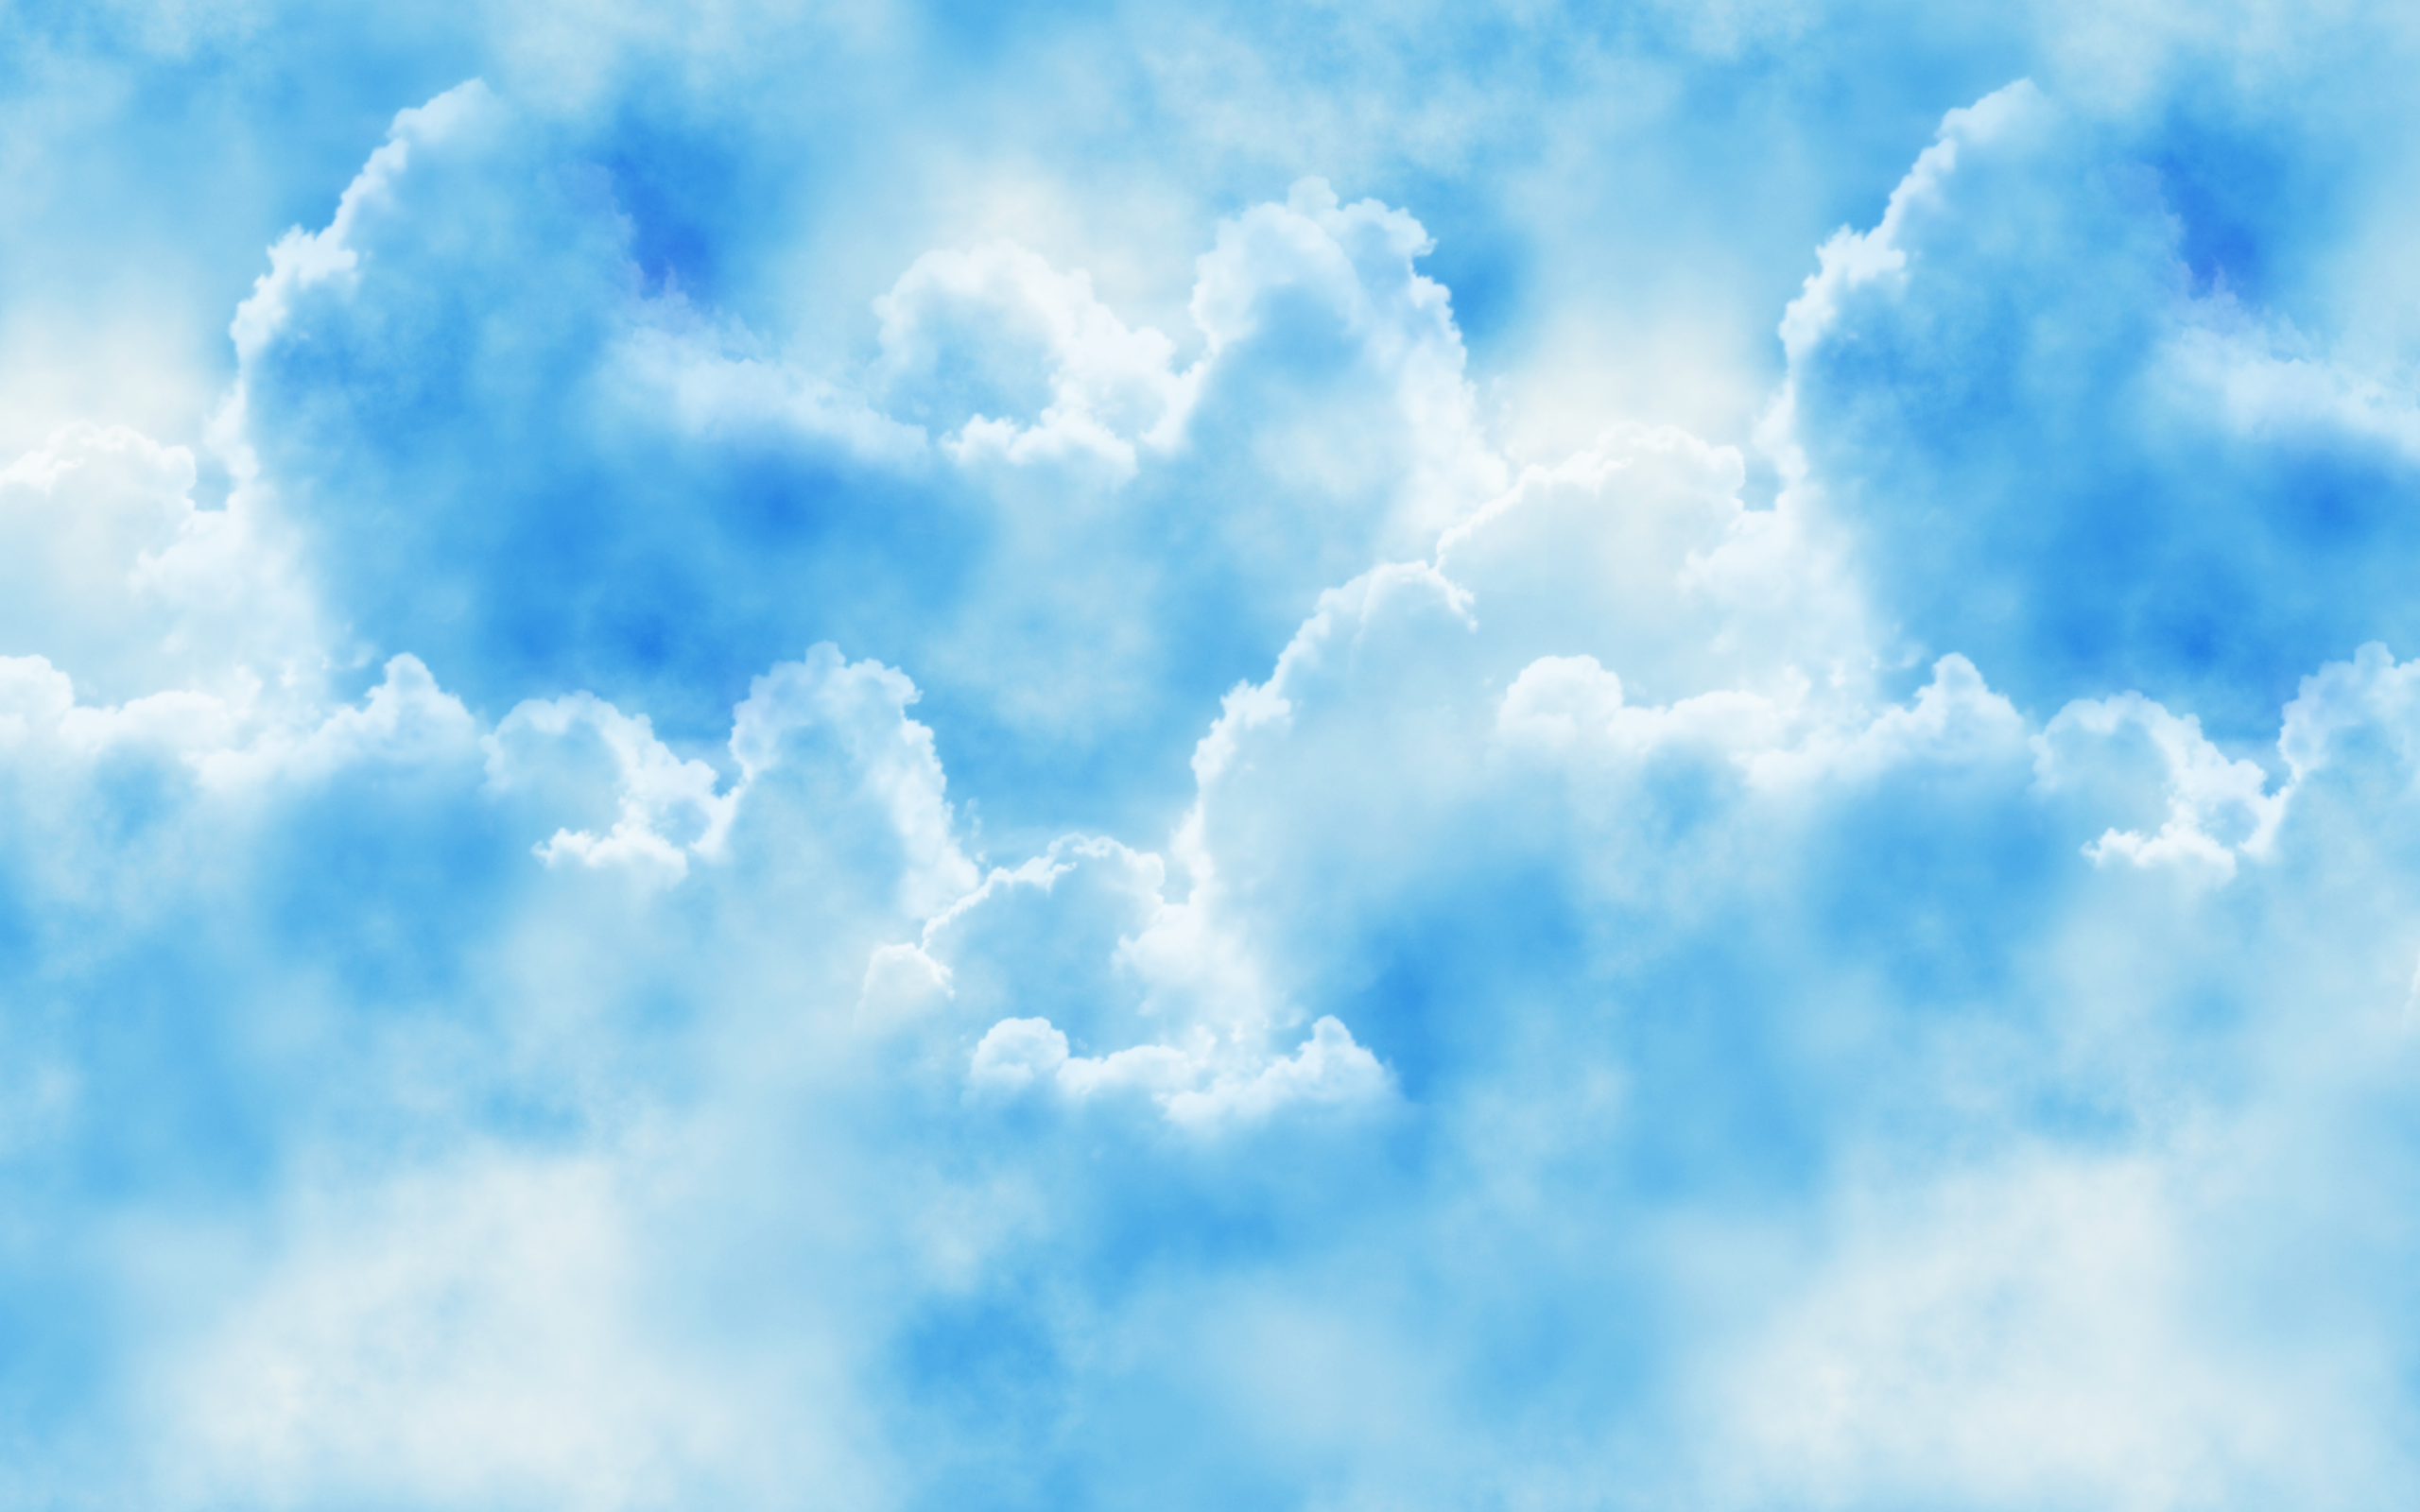 Cloudy Sky Background PNG Transparent Cloudy Sky Background.